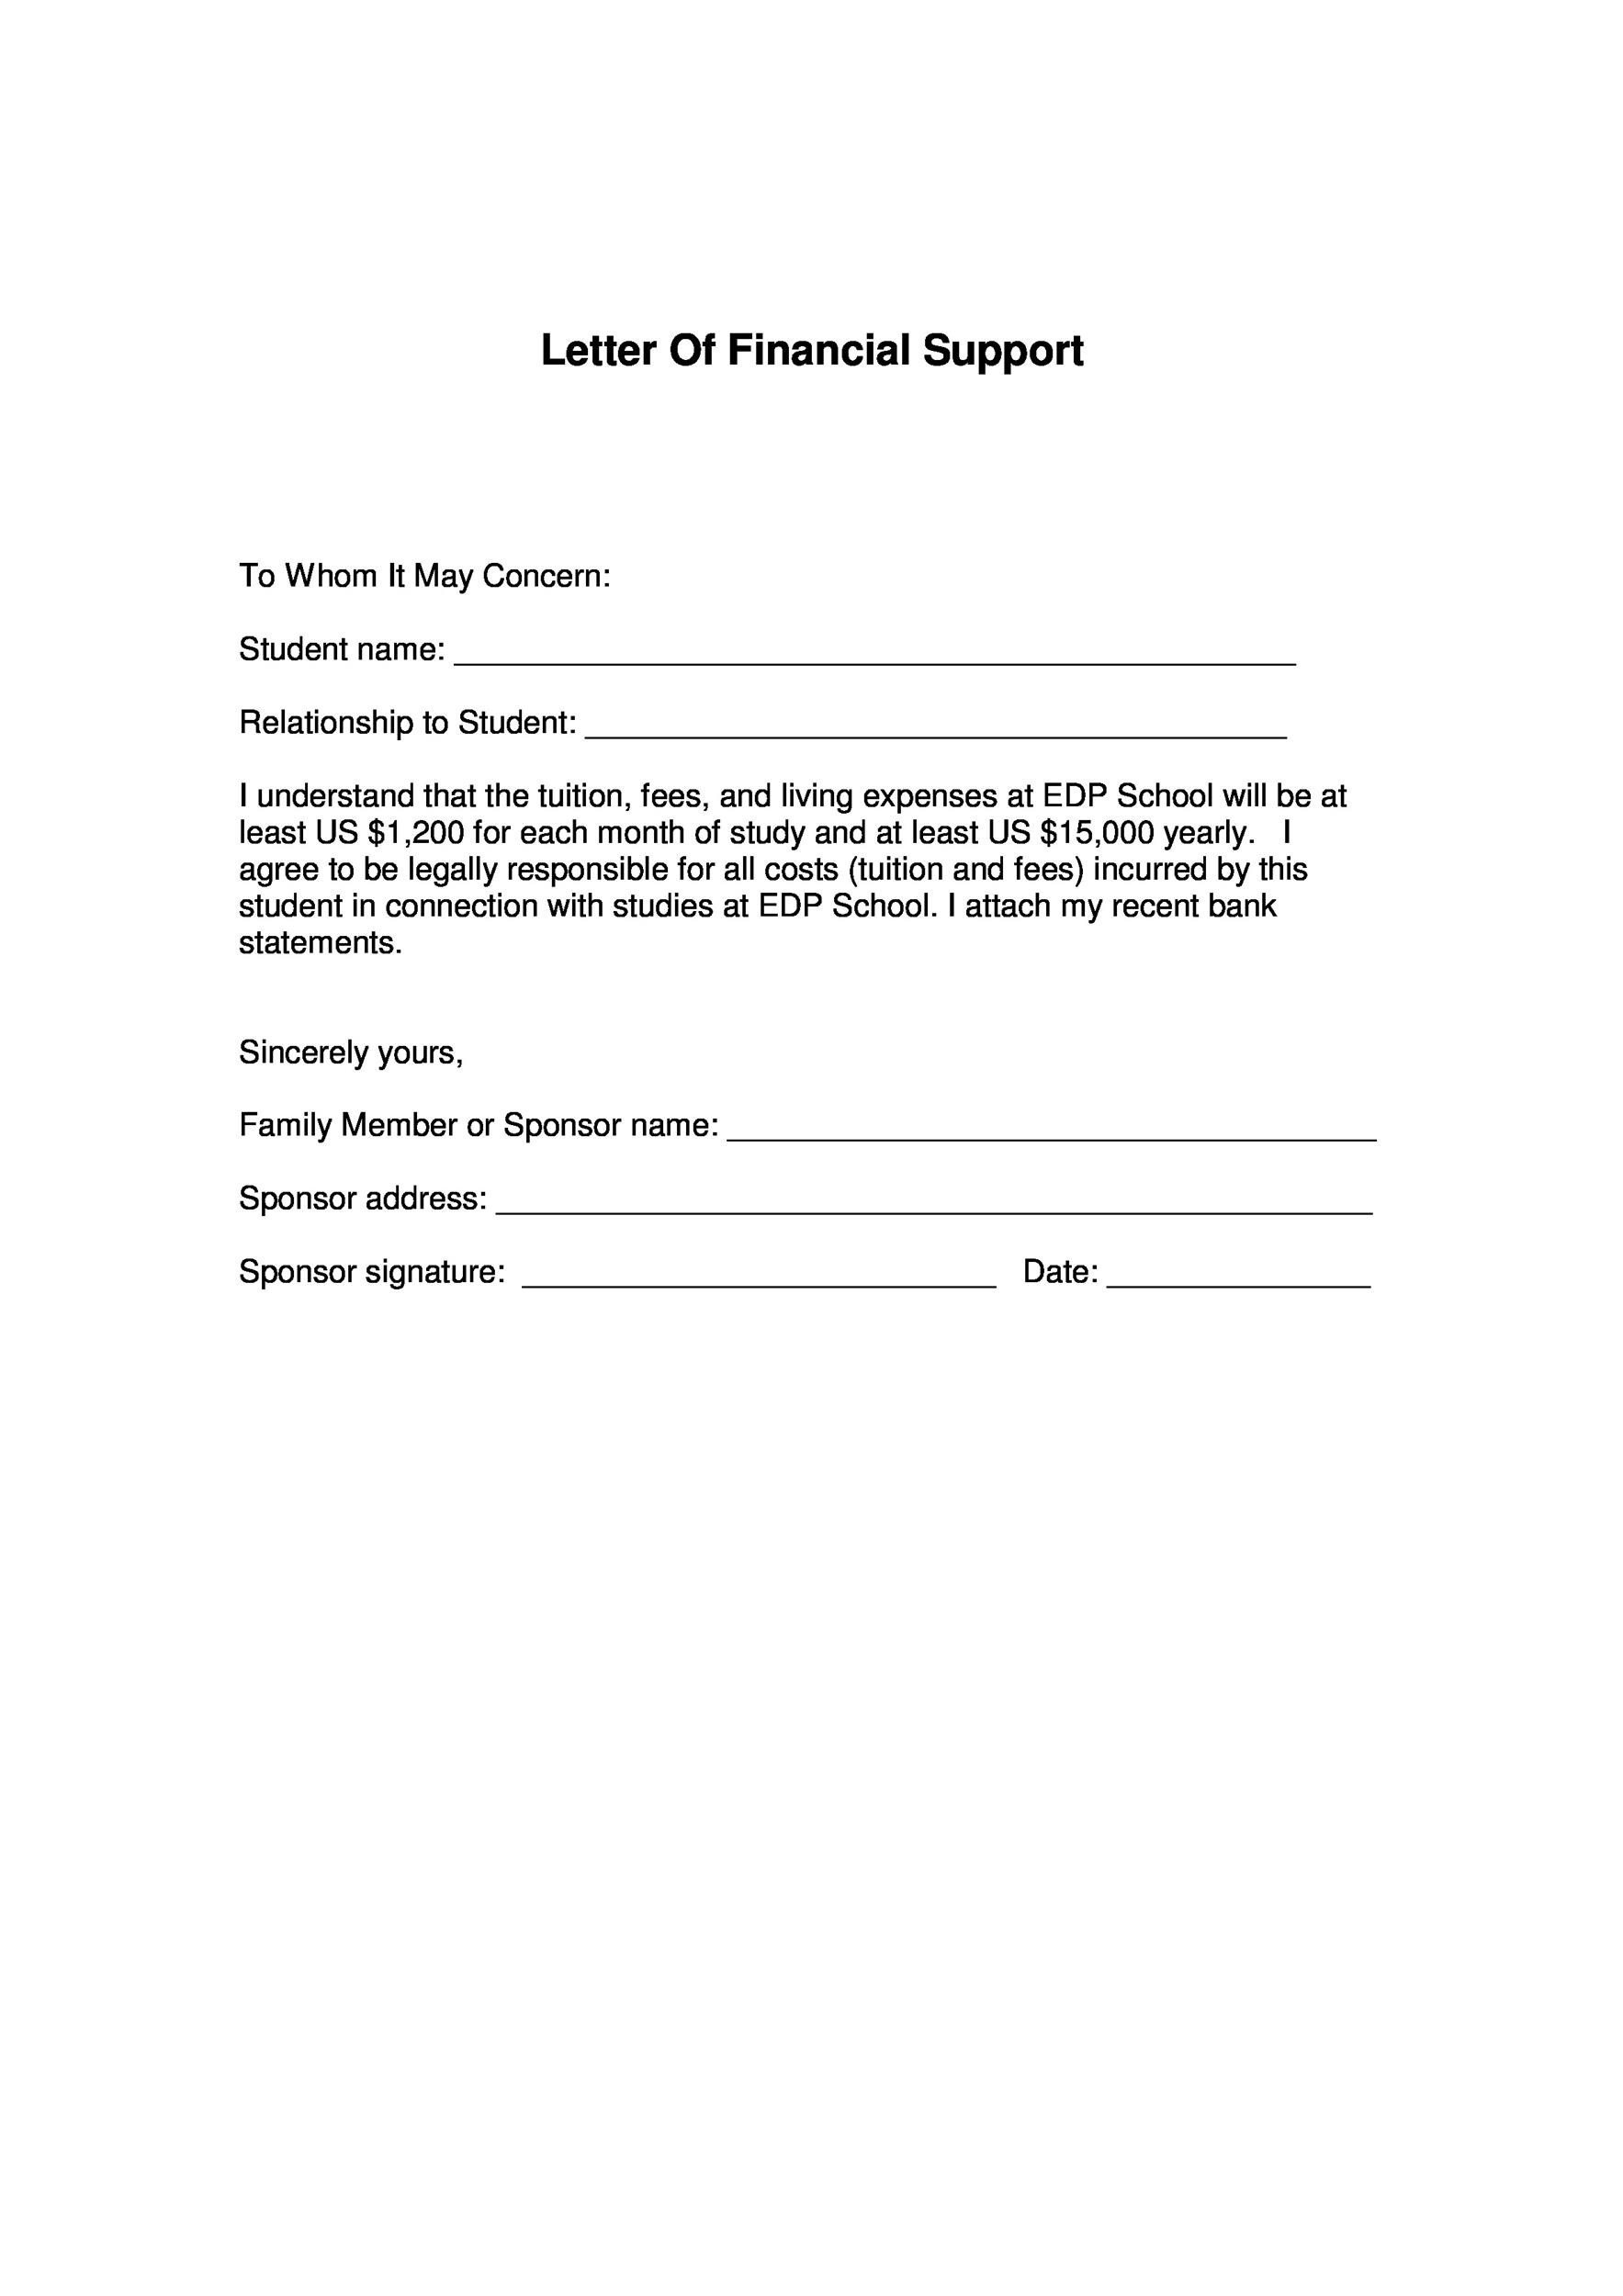 40 proven letter of support templates financial for grant printable letter of support 16 altavistaventures Choice Image